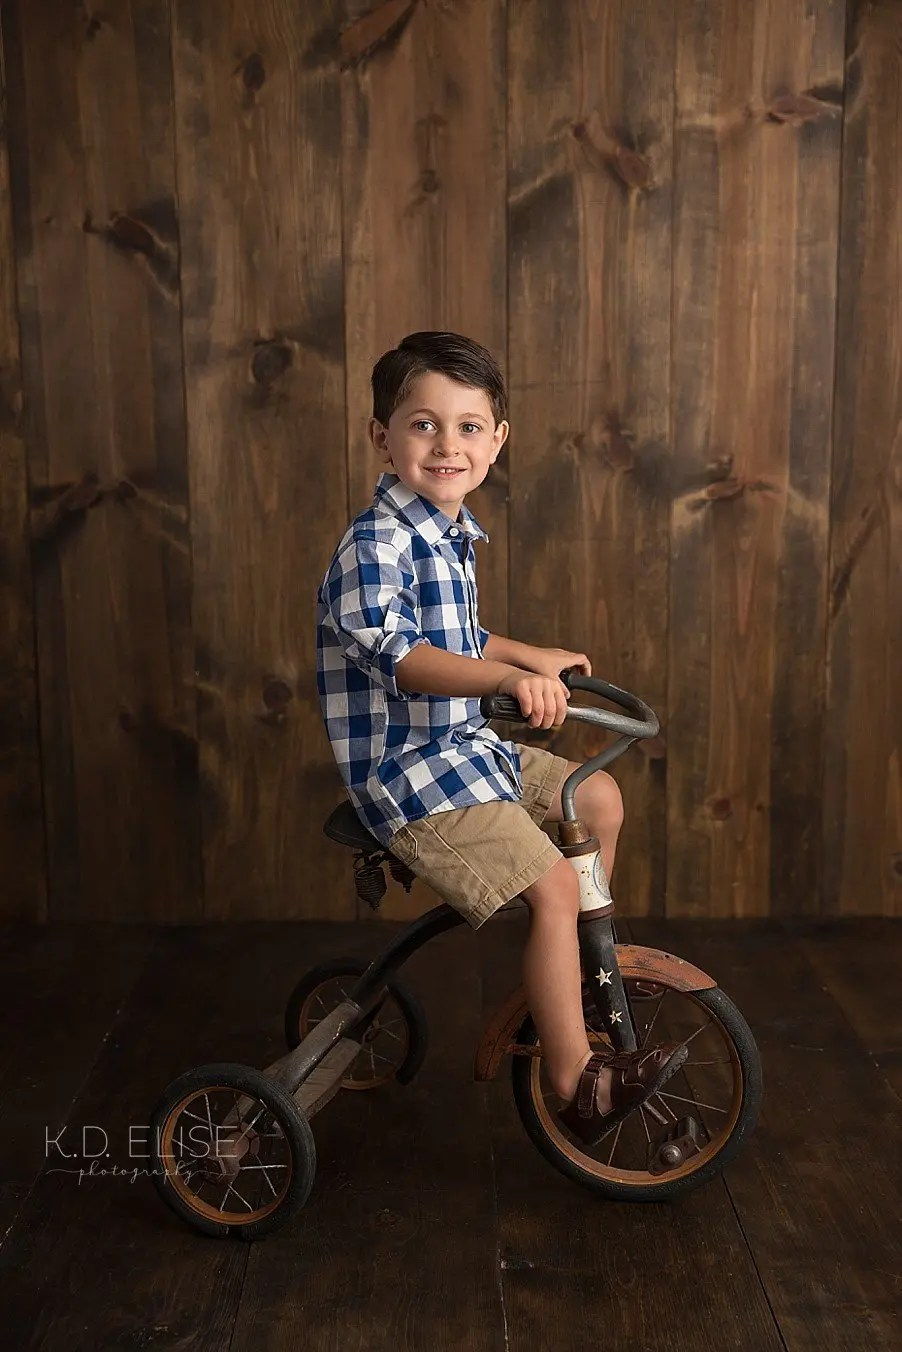 Four year old boy riding a vintage tricycle.